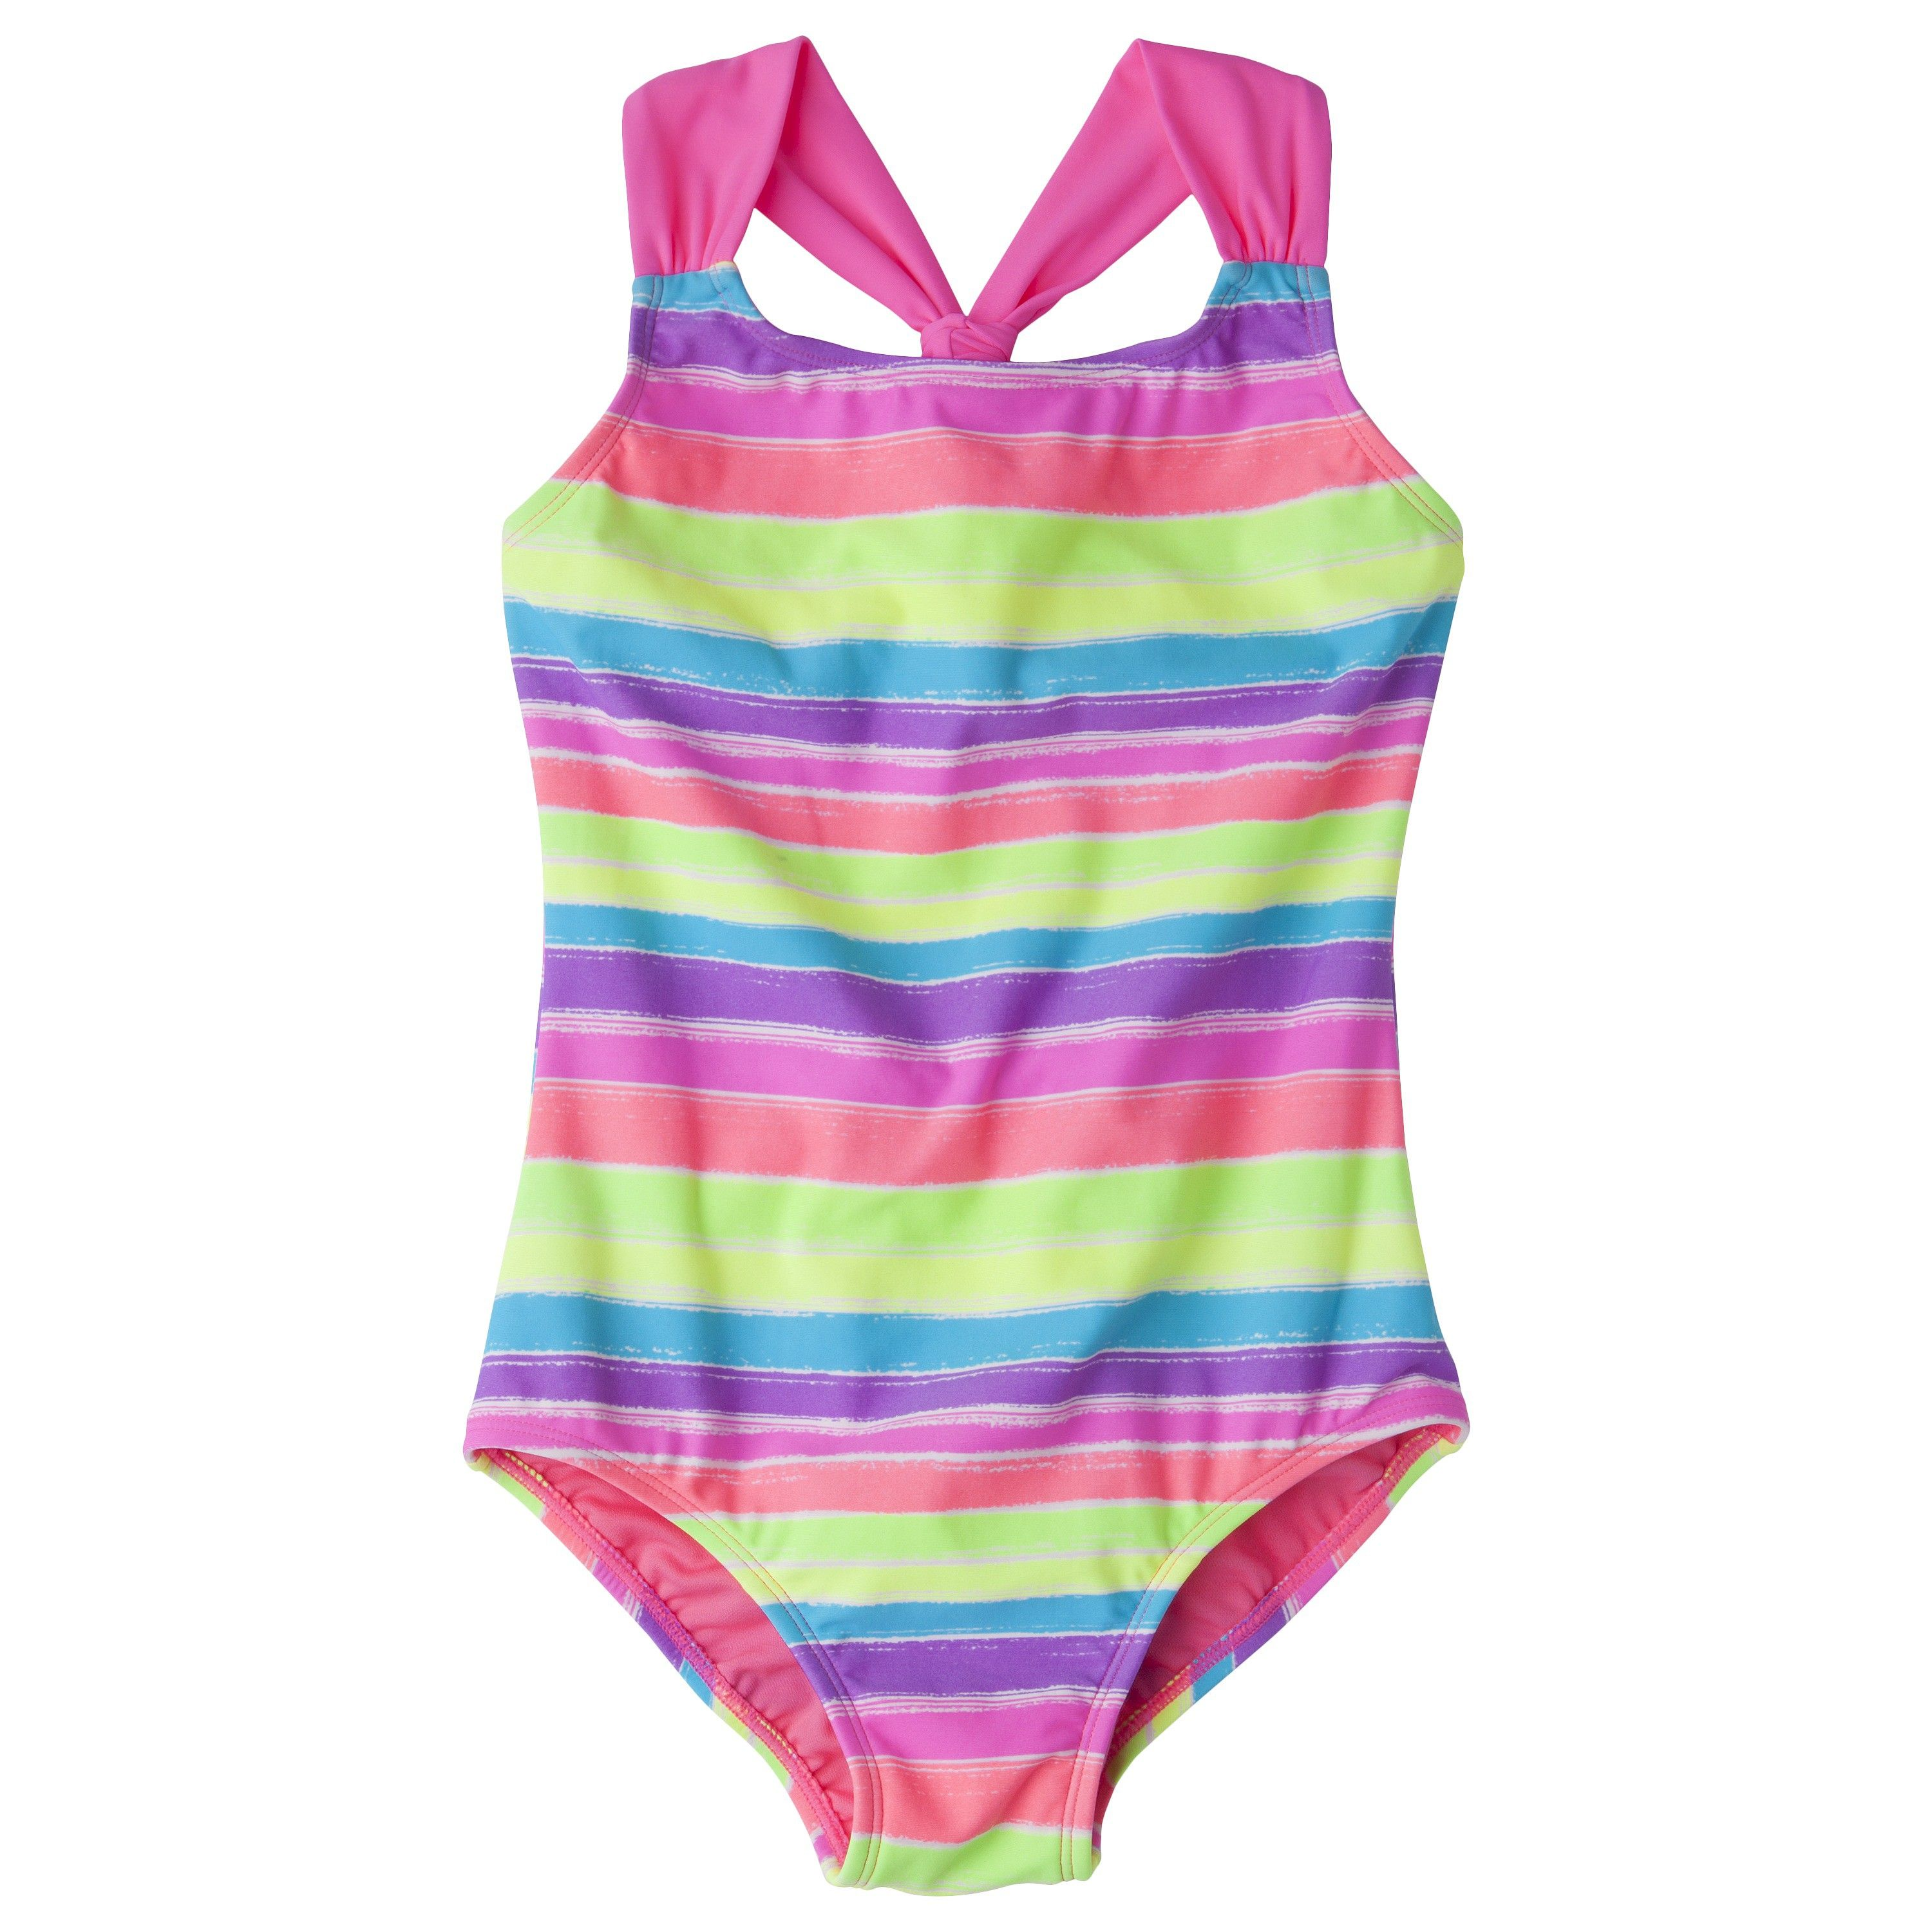 Girls' 1-Piece Striped Swimsuit Target